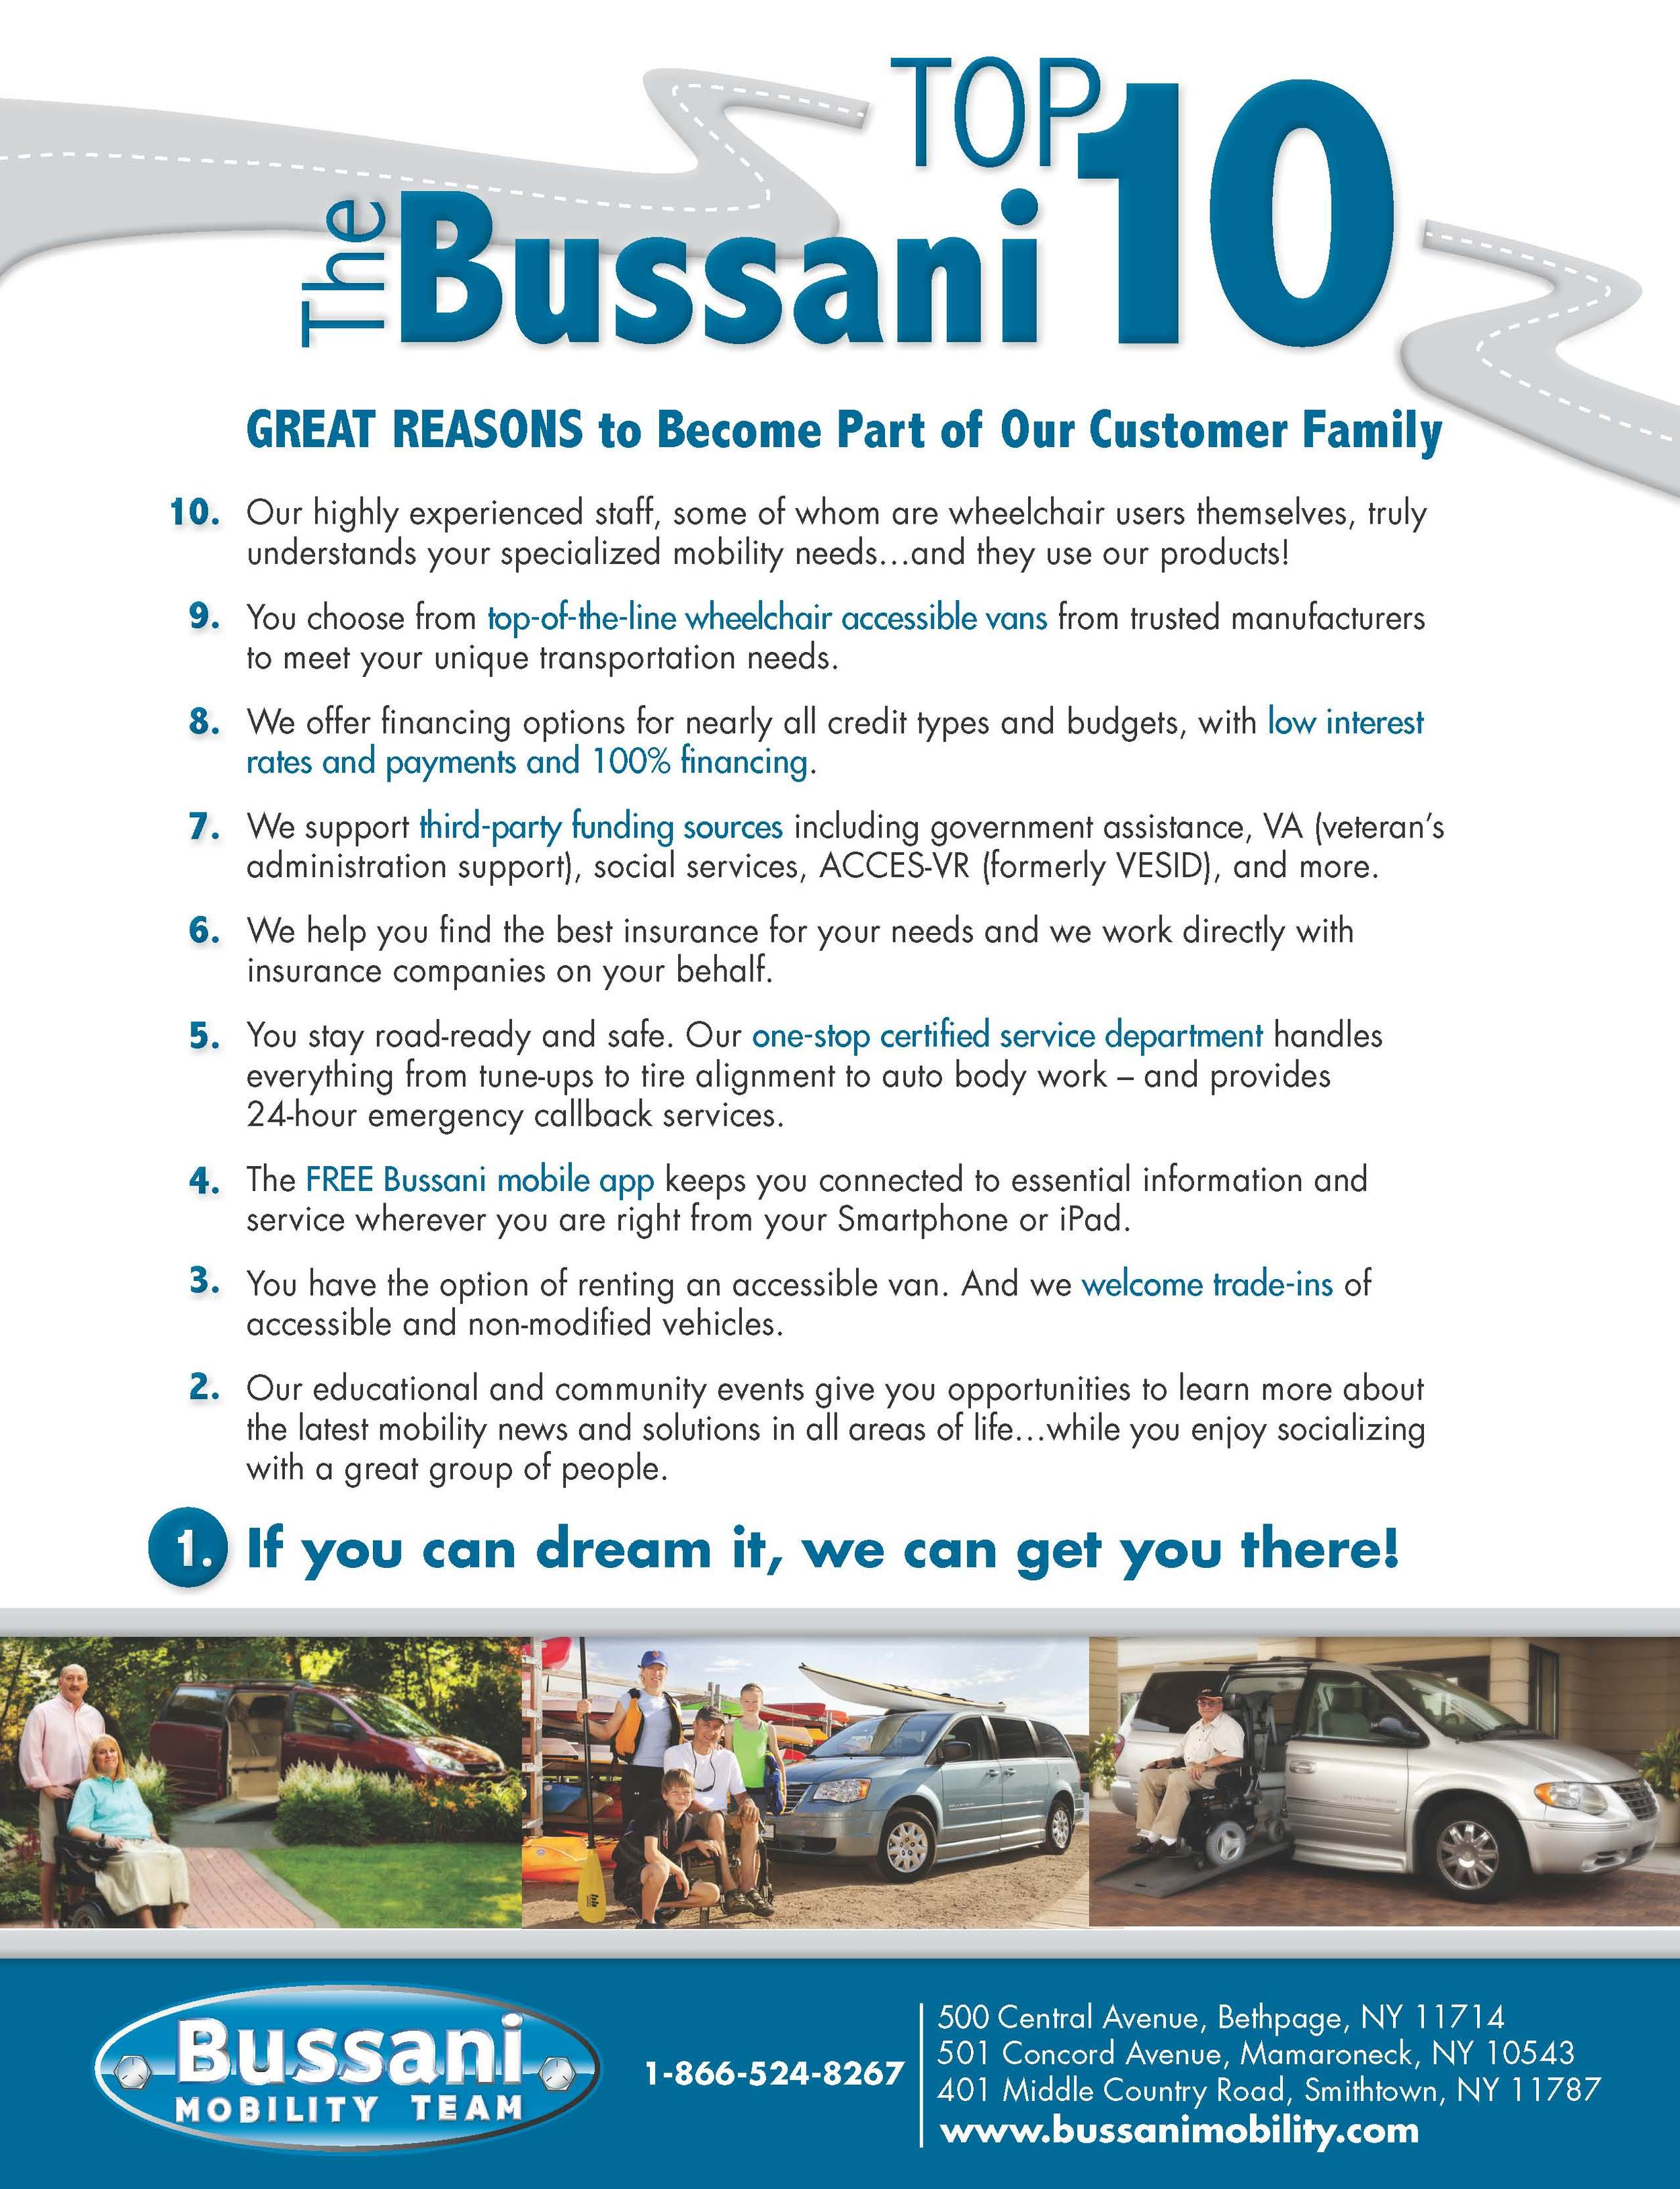 Top 10 Why Buy Bussani flyerJPEG_Page_1.jpg